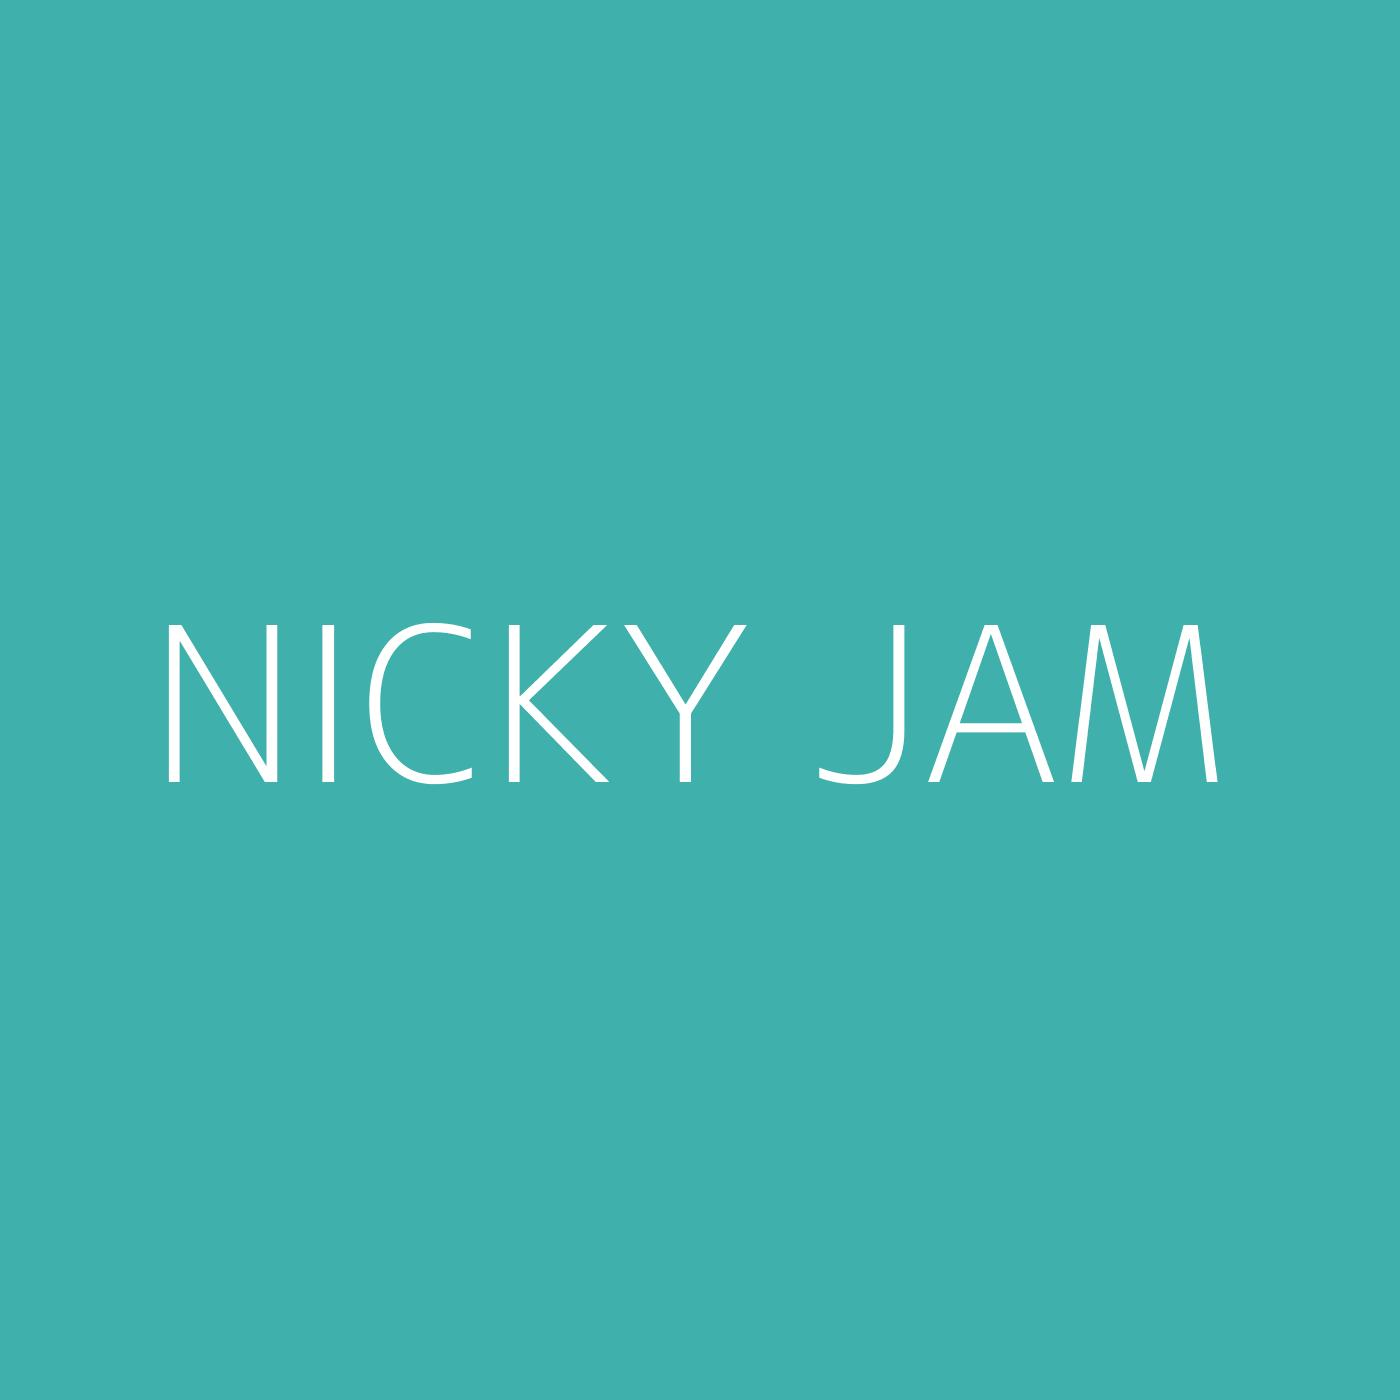 Nicky Jam Playlist Artwork